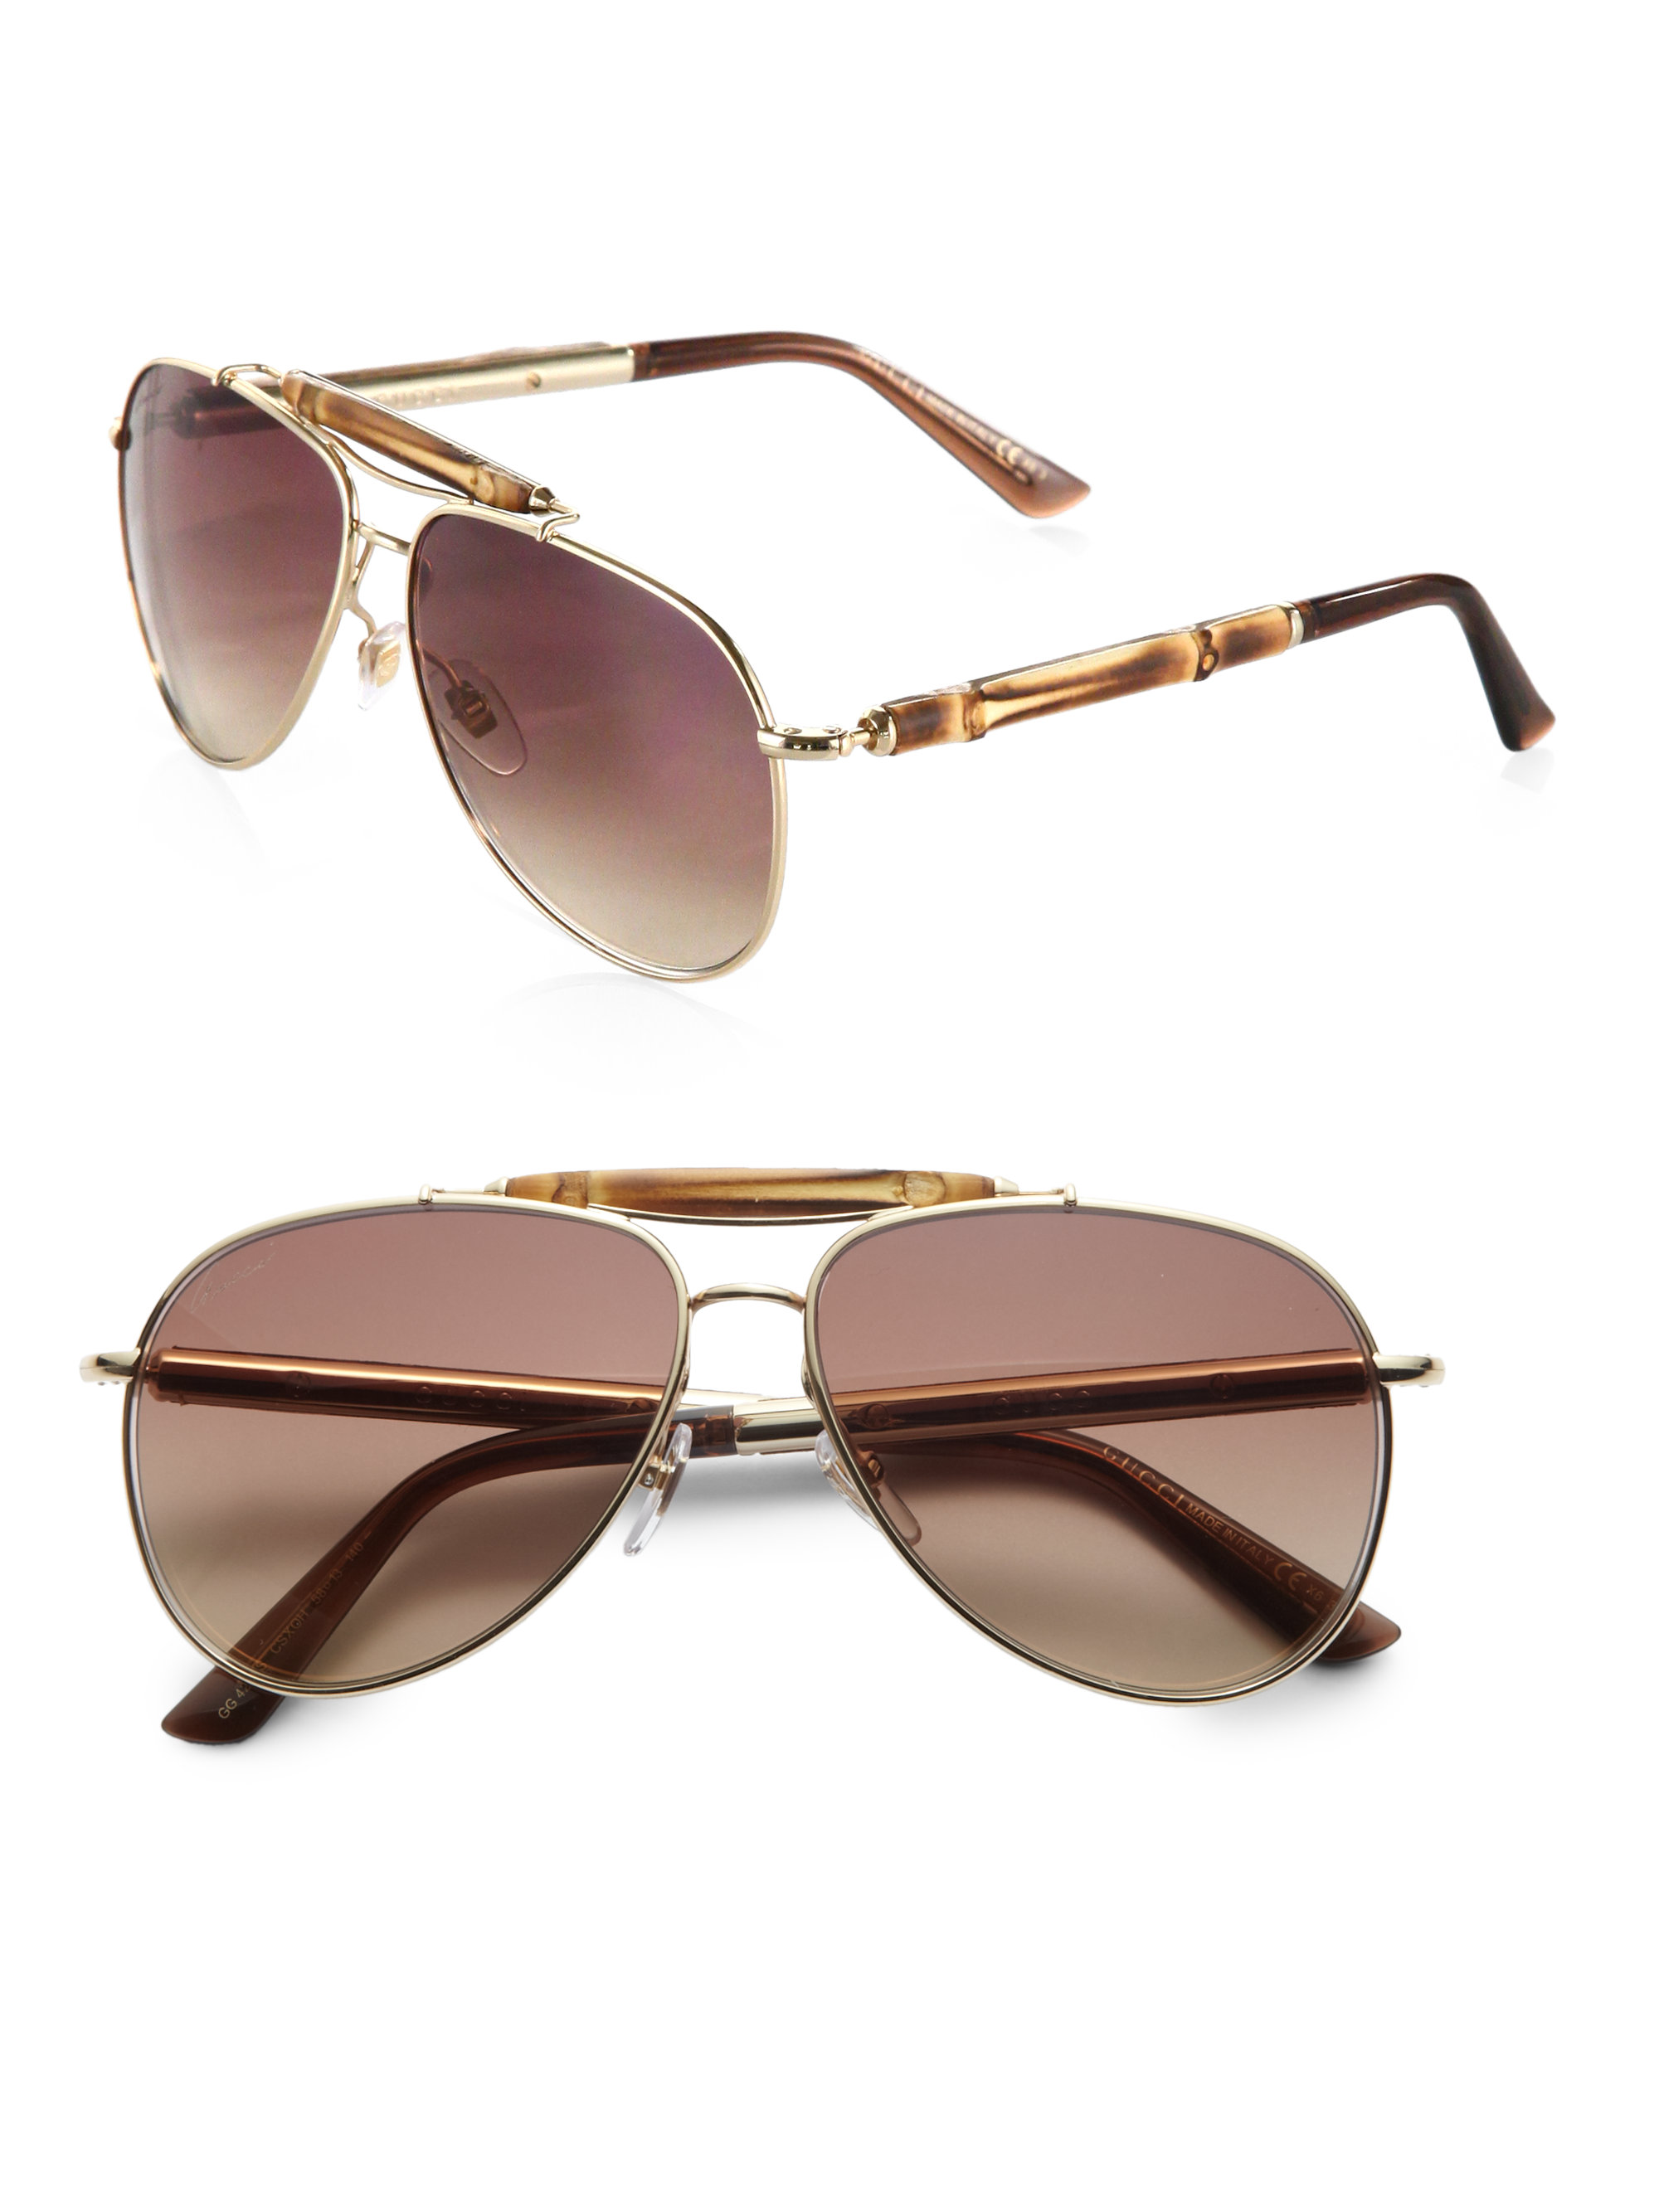 9fcc04c6862 Gucci Aviator Sunglasses With Bamboo – McAllister Technical Services